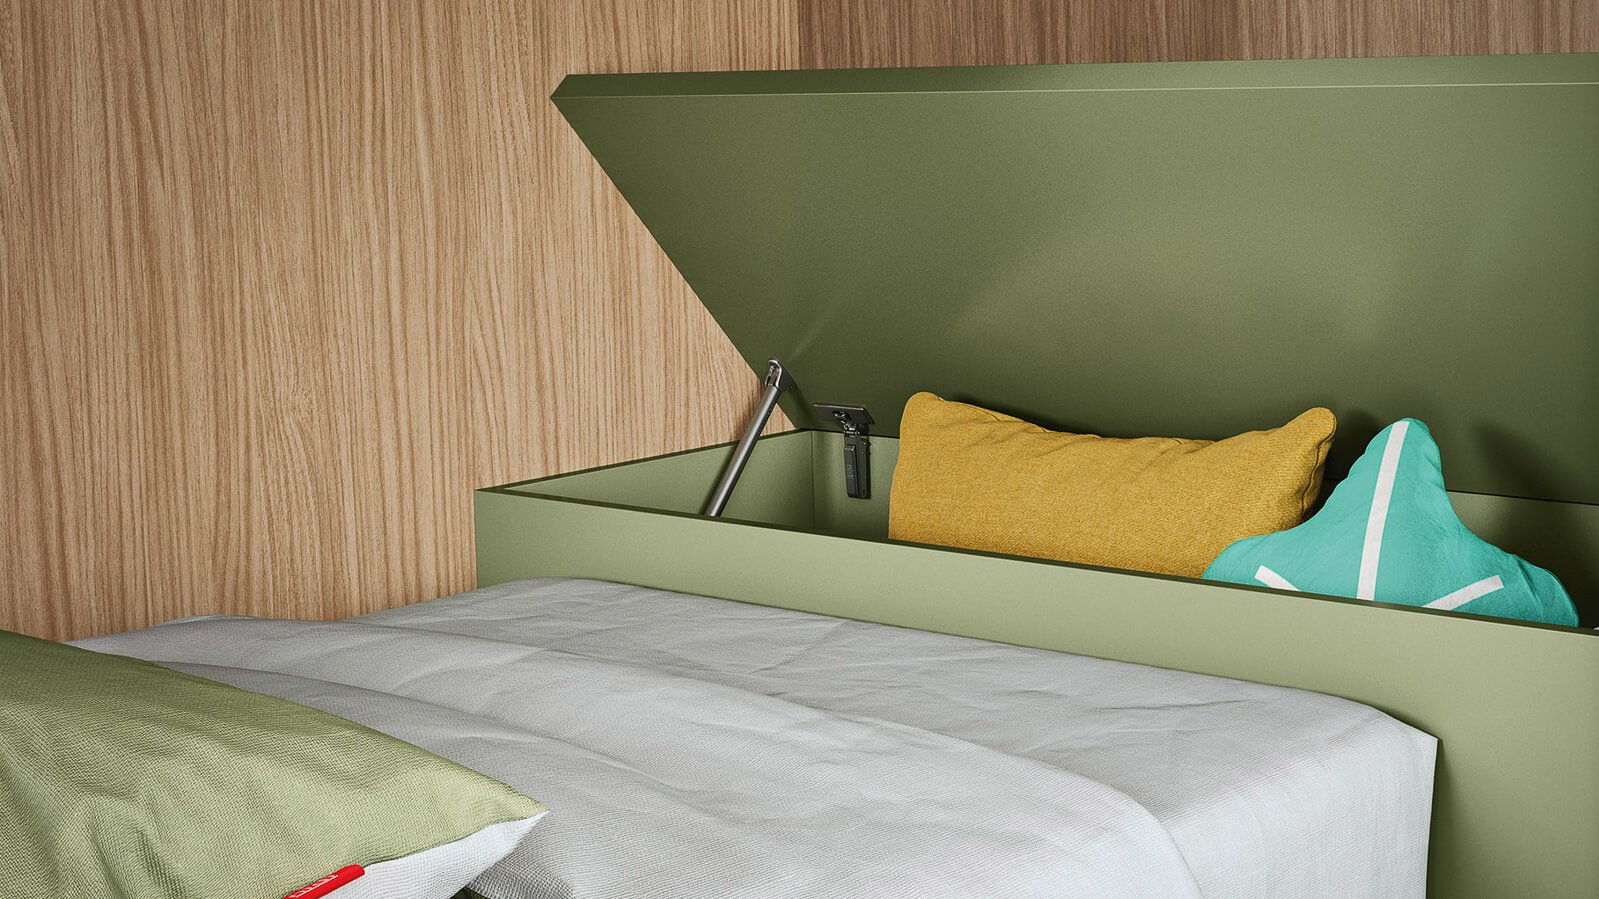 Rear-bed storage units